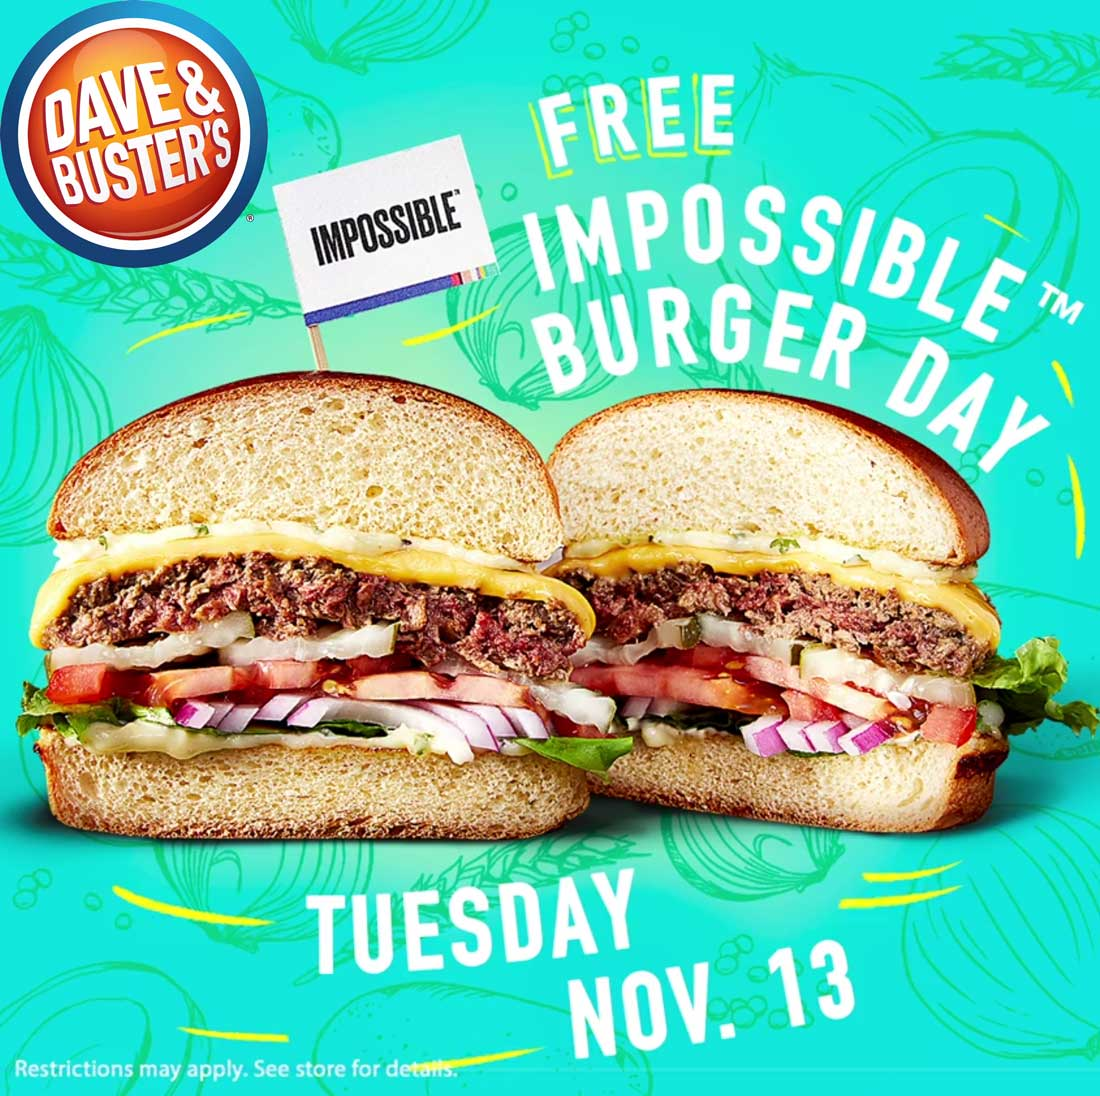 Dave & Busters Coupon July 2019 Free impossible cheeseburger Tuesday at Dave & Busters restaurants